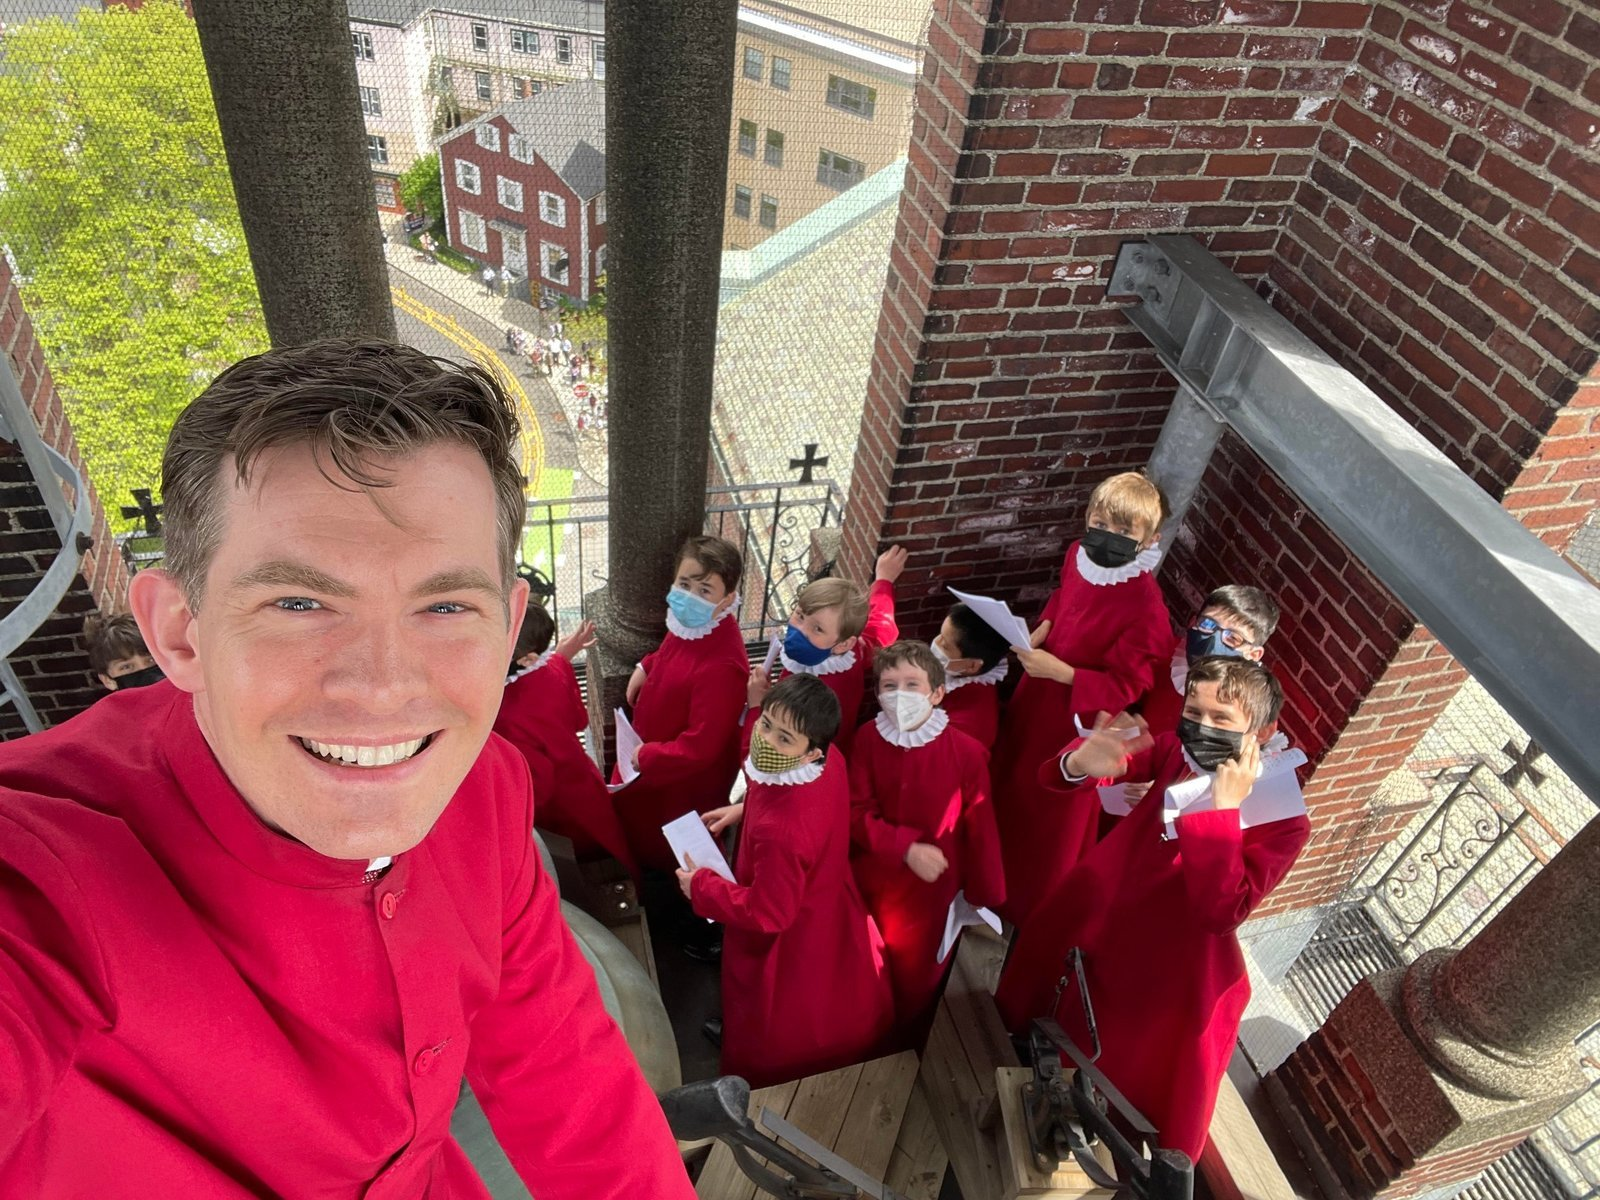 Image: Celebrating their recording from the Bell Tower!